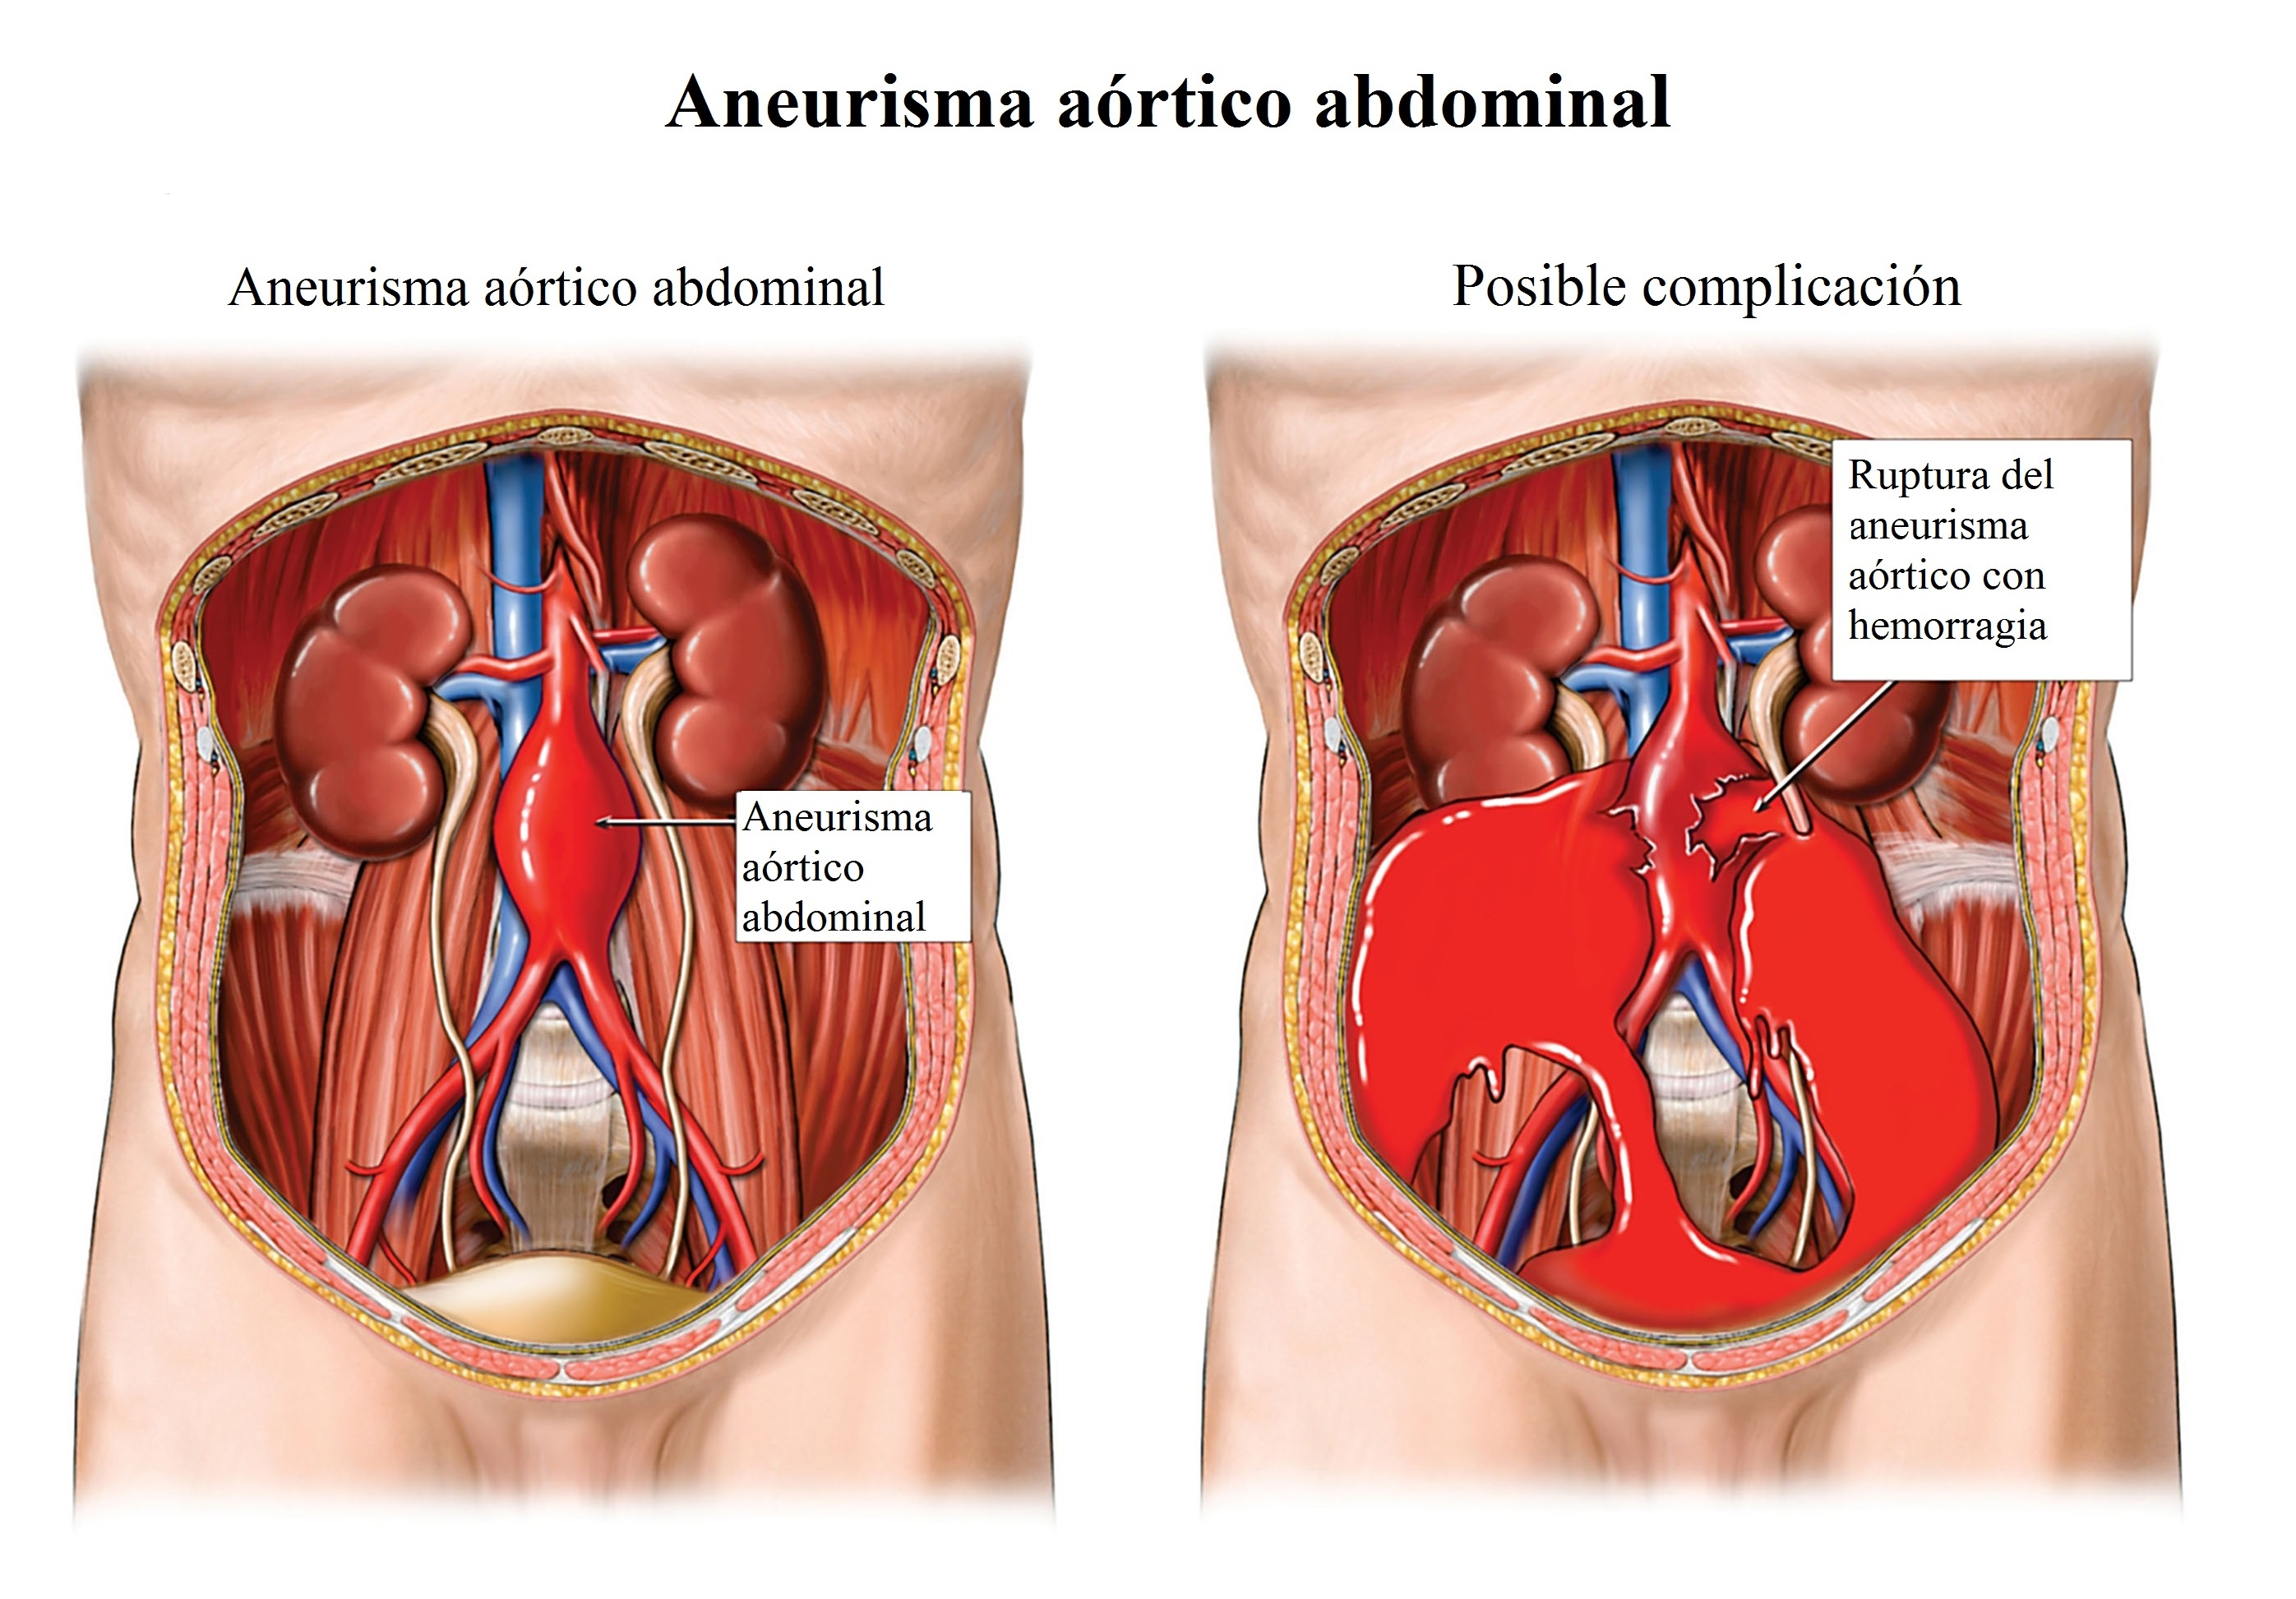 ADTTRE Abdominal Aortic Aneurysm, Rupture with Internal Hemorrhaging (Bleeding)